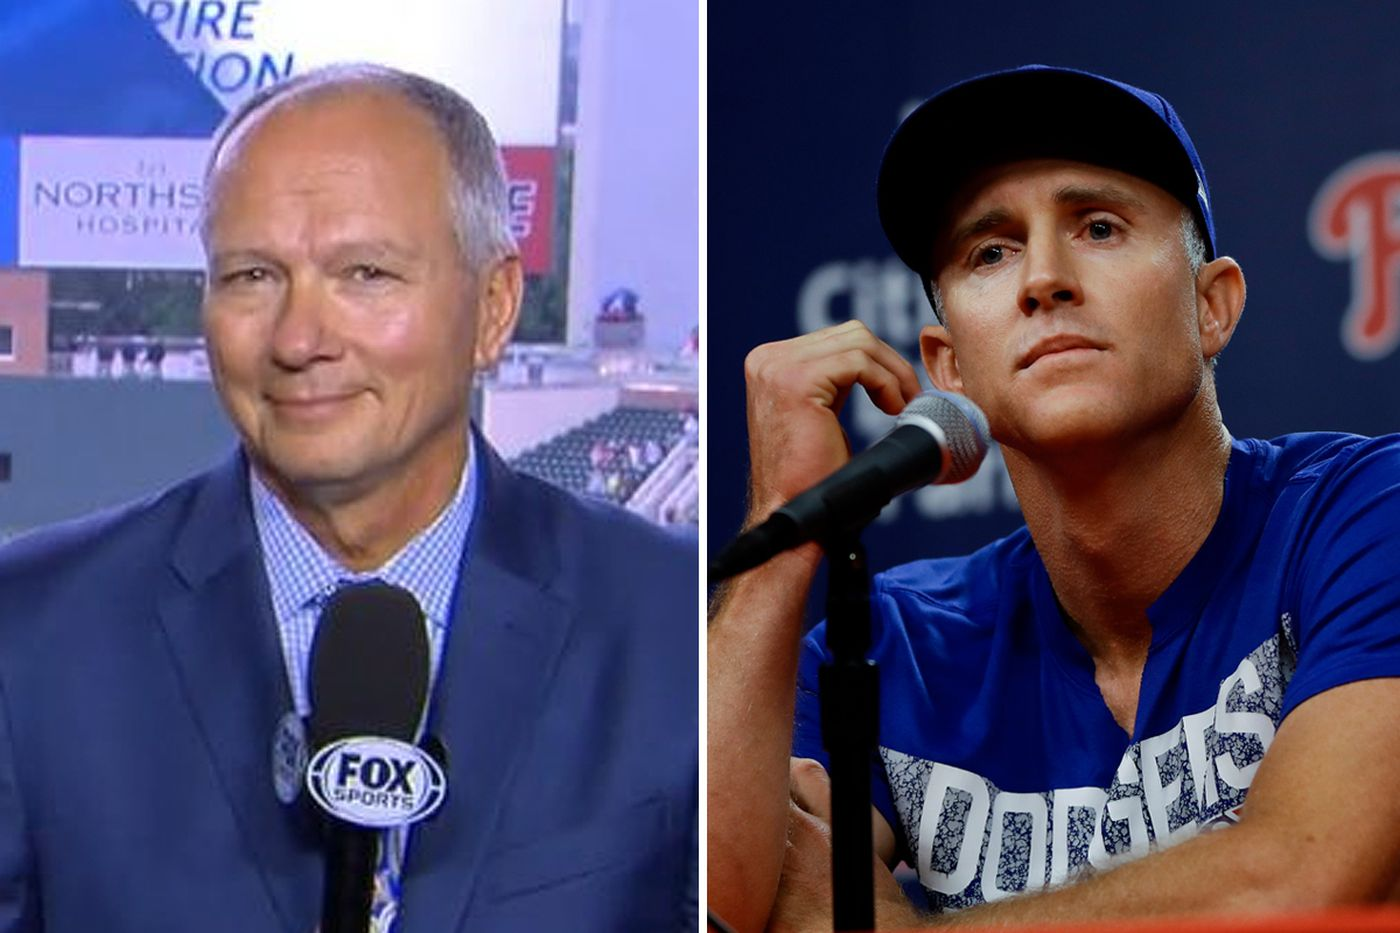 Chase Utley is target of a bizarre rant by Braves announcer Joe Simpson